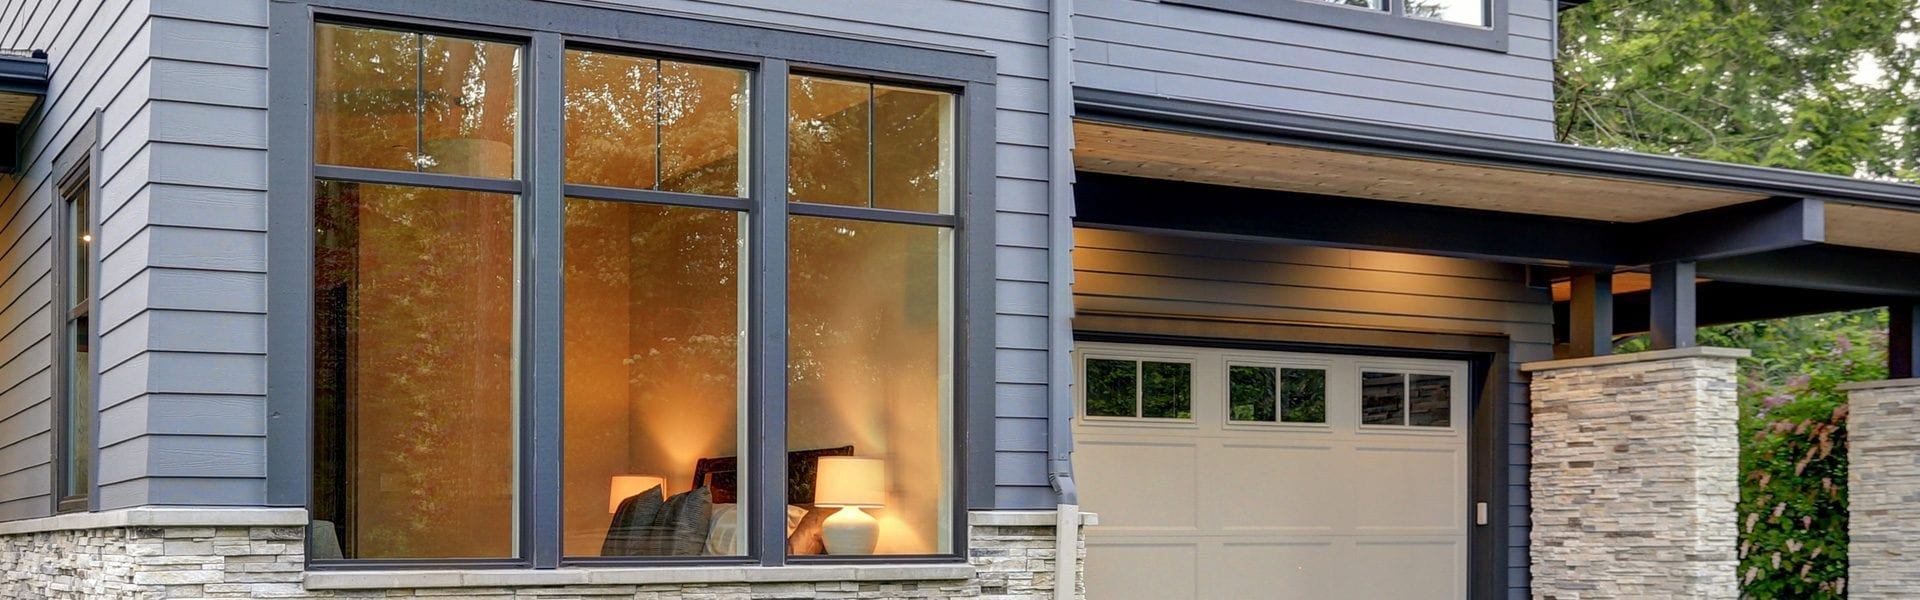 Outdoor View | BlackBerry offers windows with unparalleled energy efficiency windows versus your outdated windows.